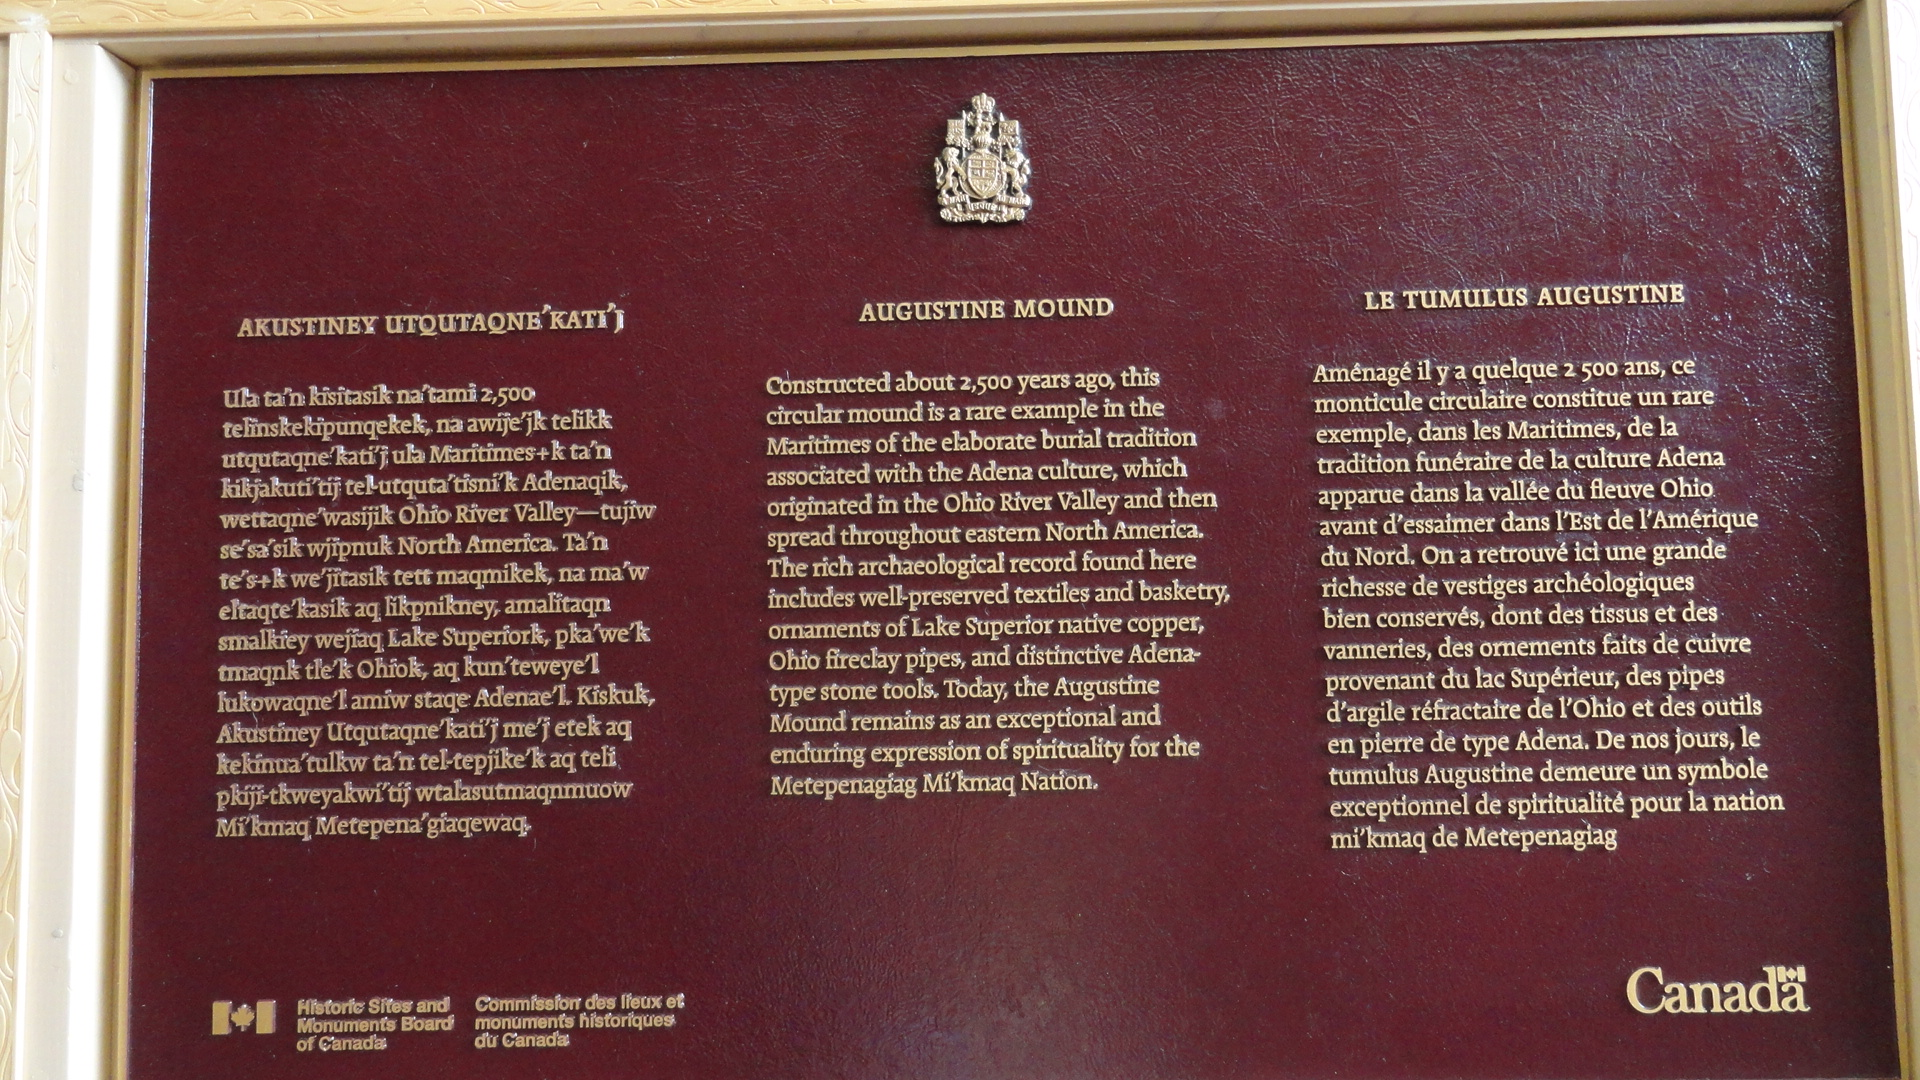 National Historic site Government of Canada Plaque